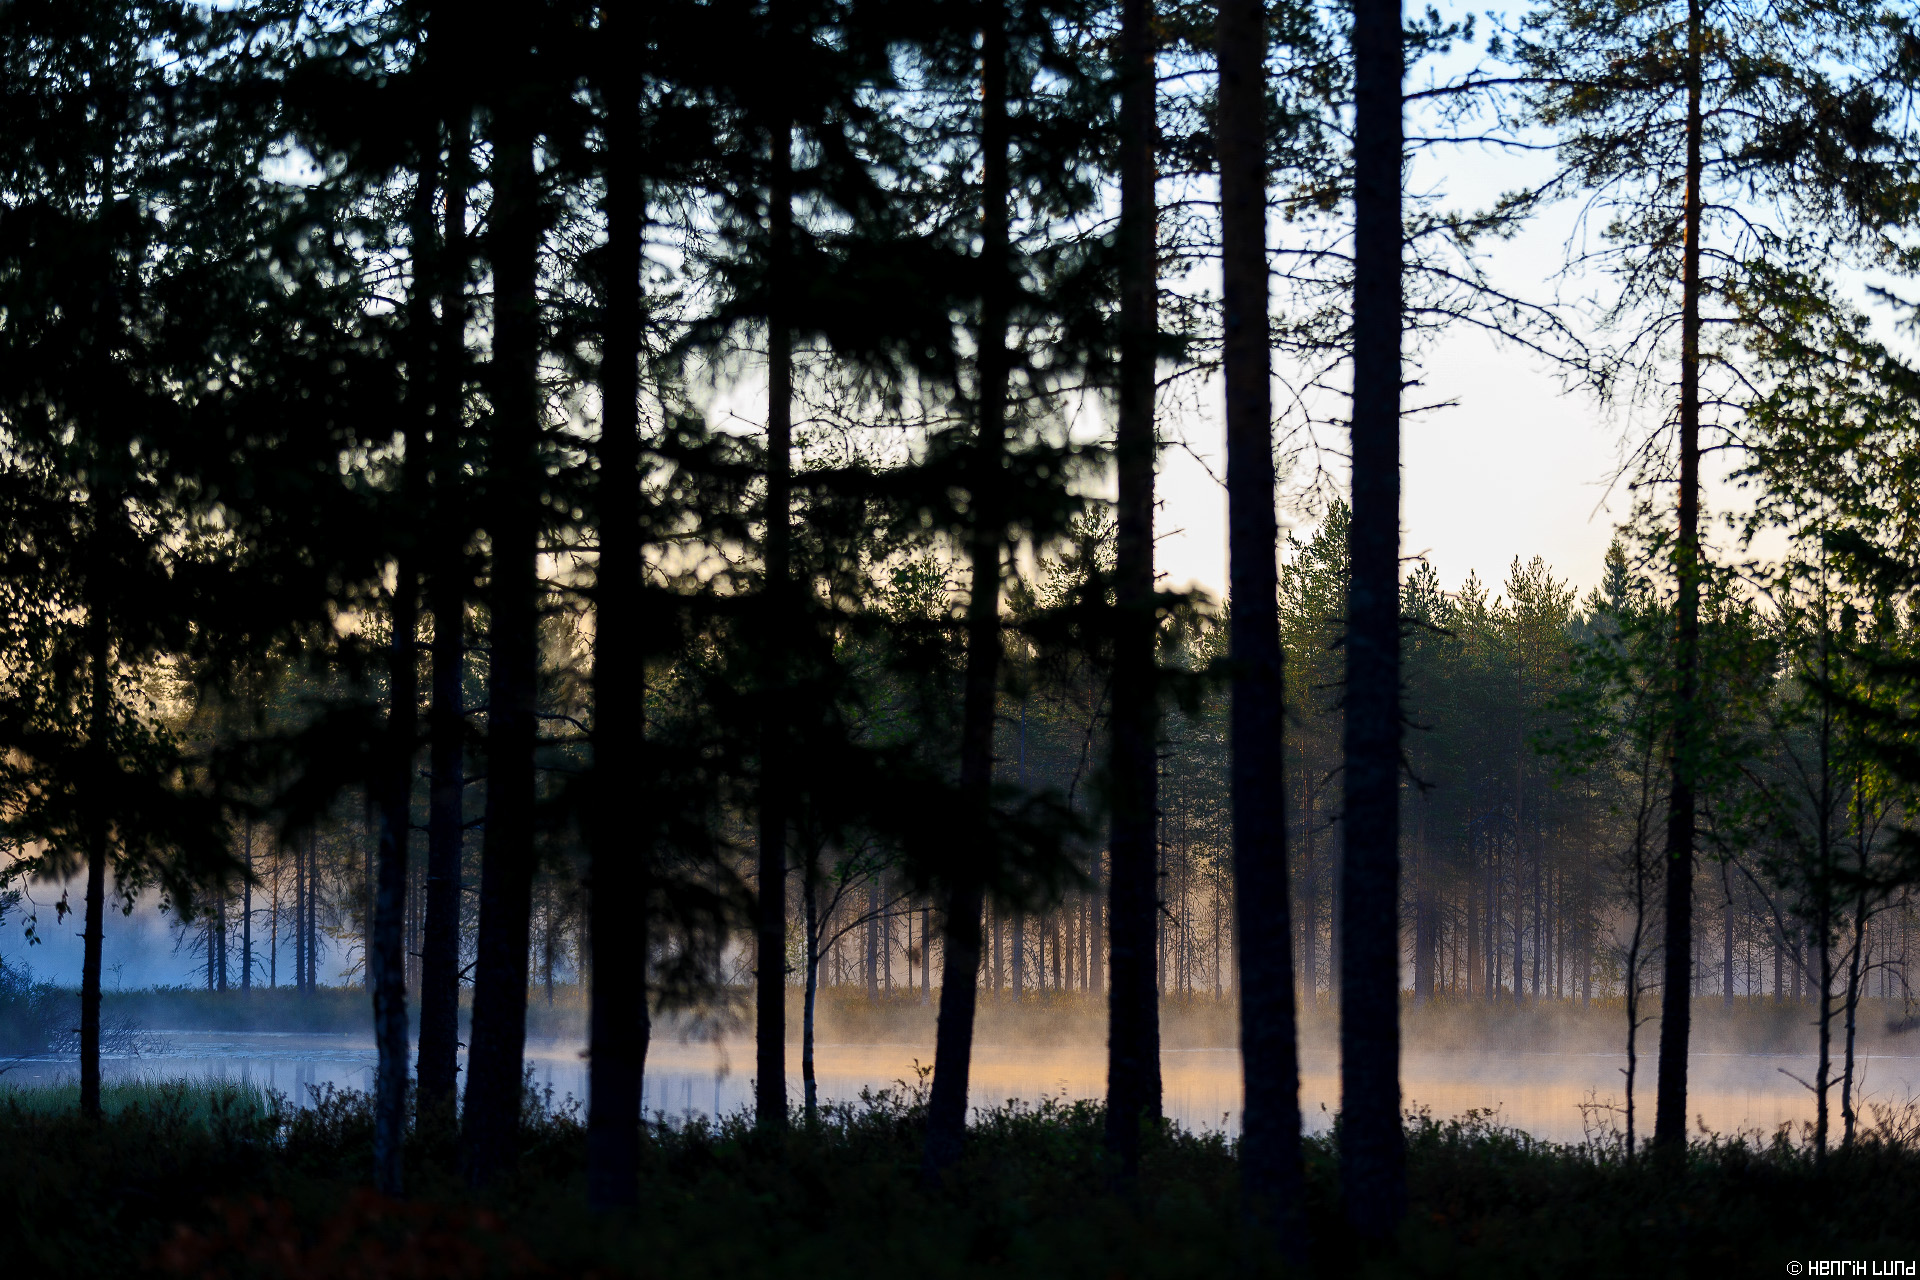 Morning mist over Mustalampi in south-eastern Ilomantsi, Northern-Carelia, Finland. August, 2014.